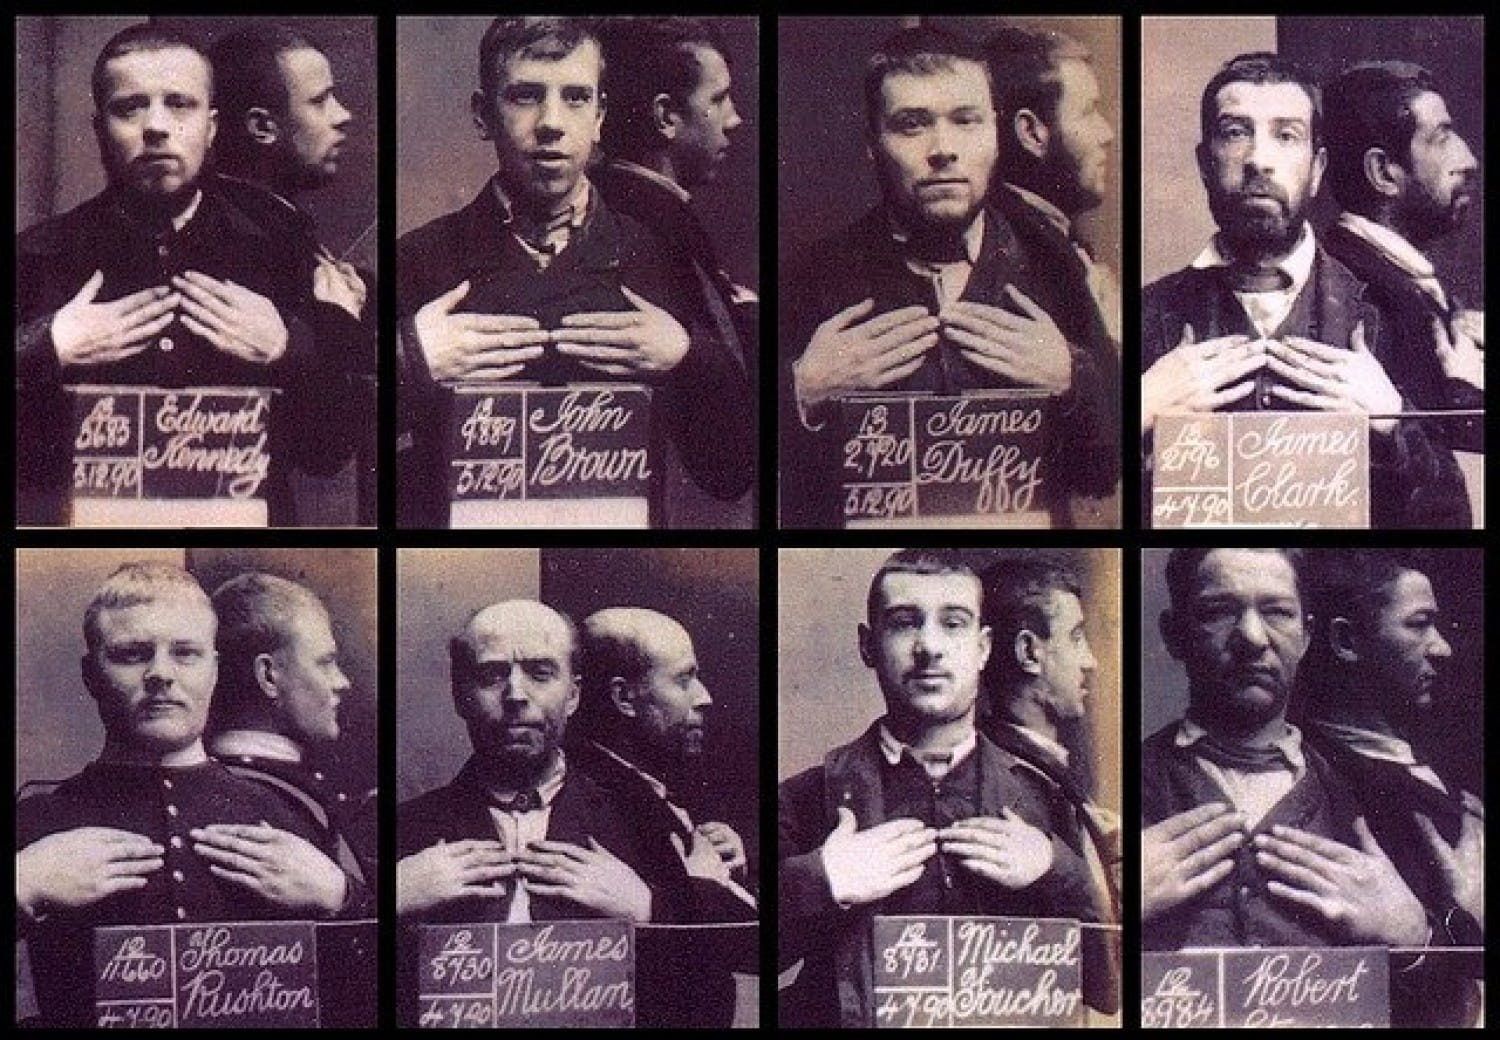 Pre-release mugshots of inmates in 1890